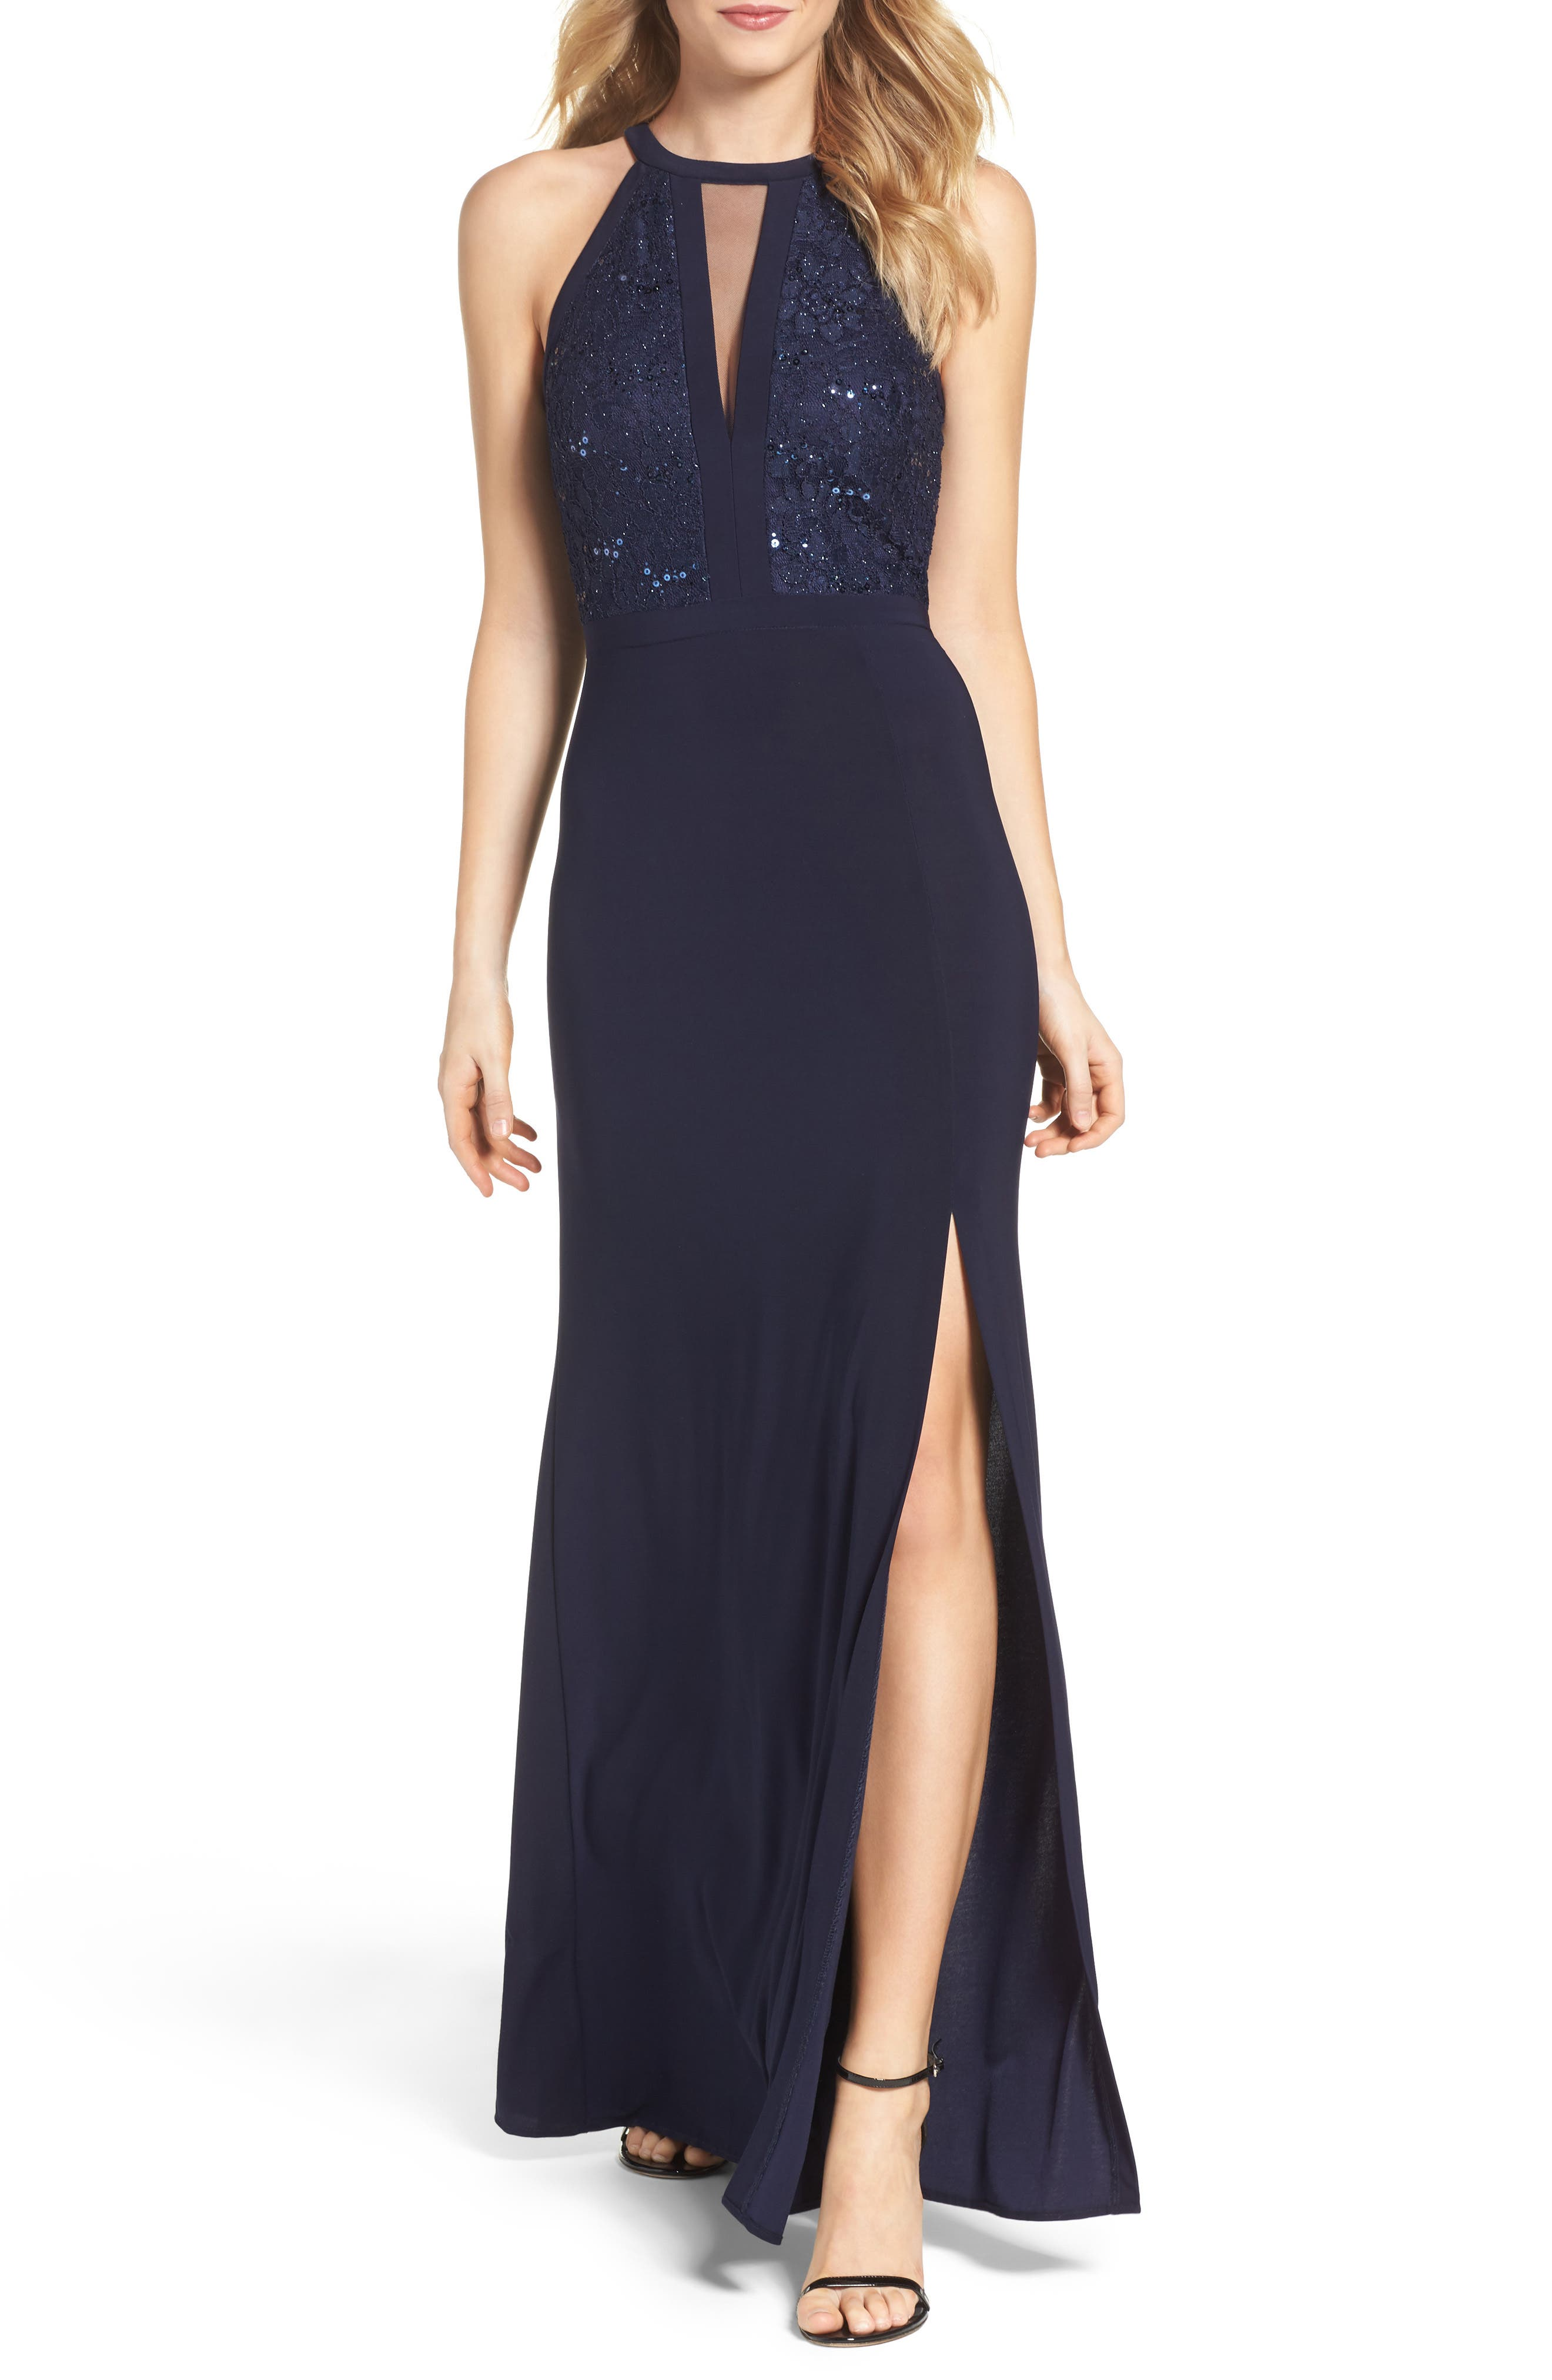 Morgan & Co. Lace & Jersey Gown, /14 - Blue